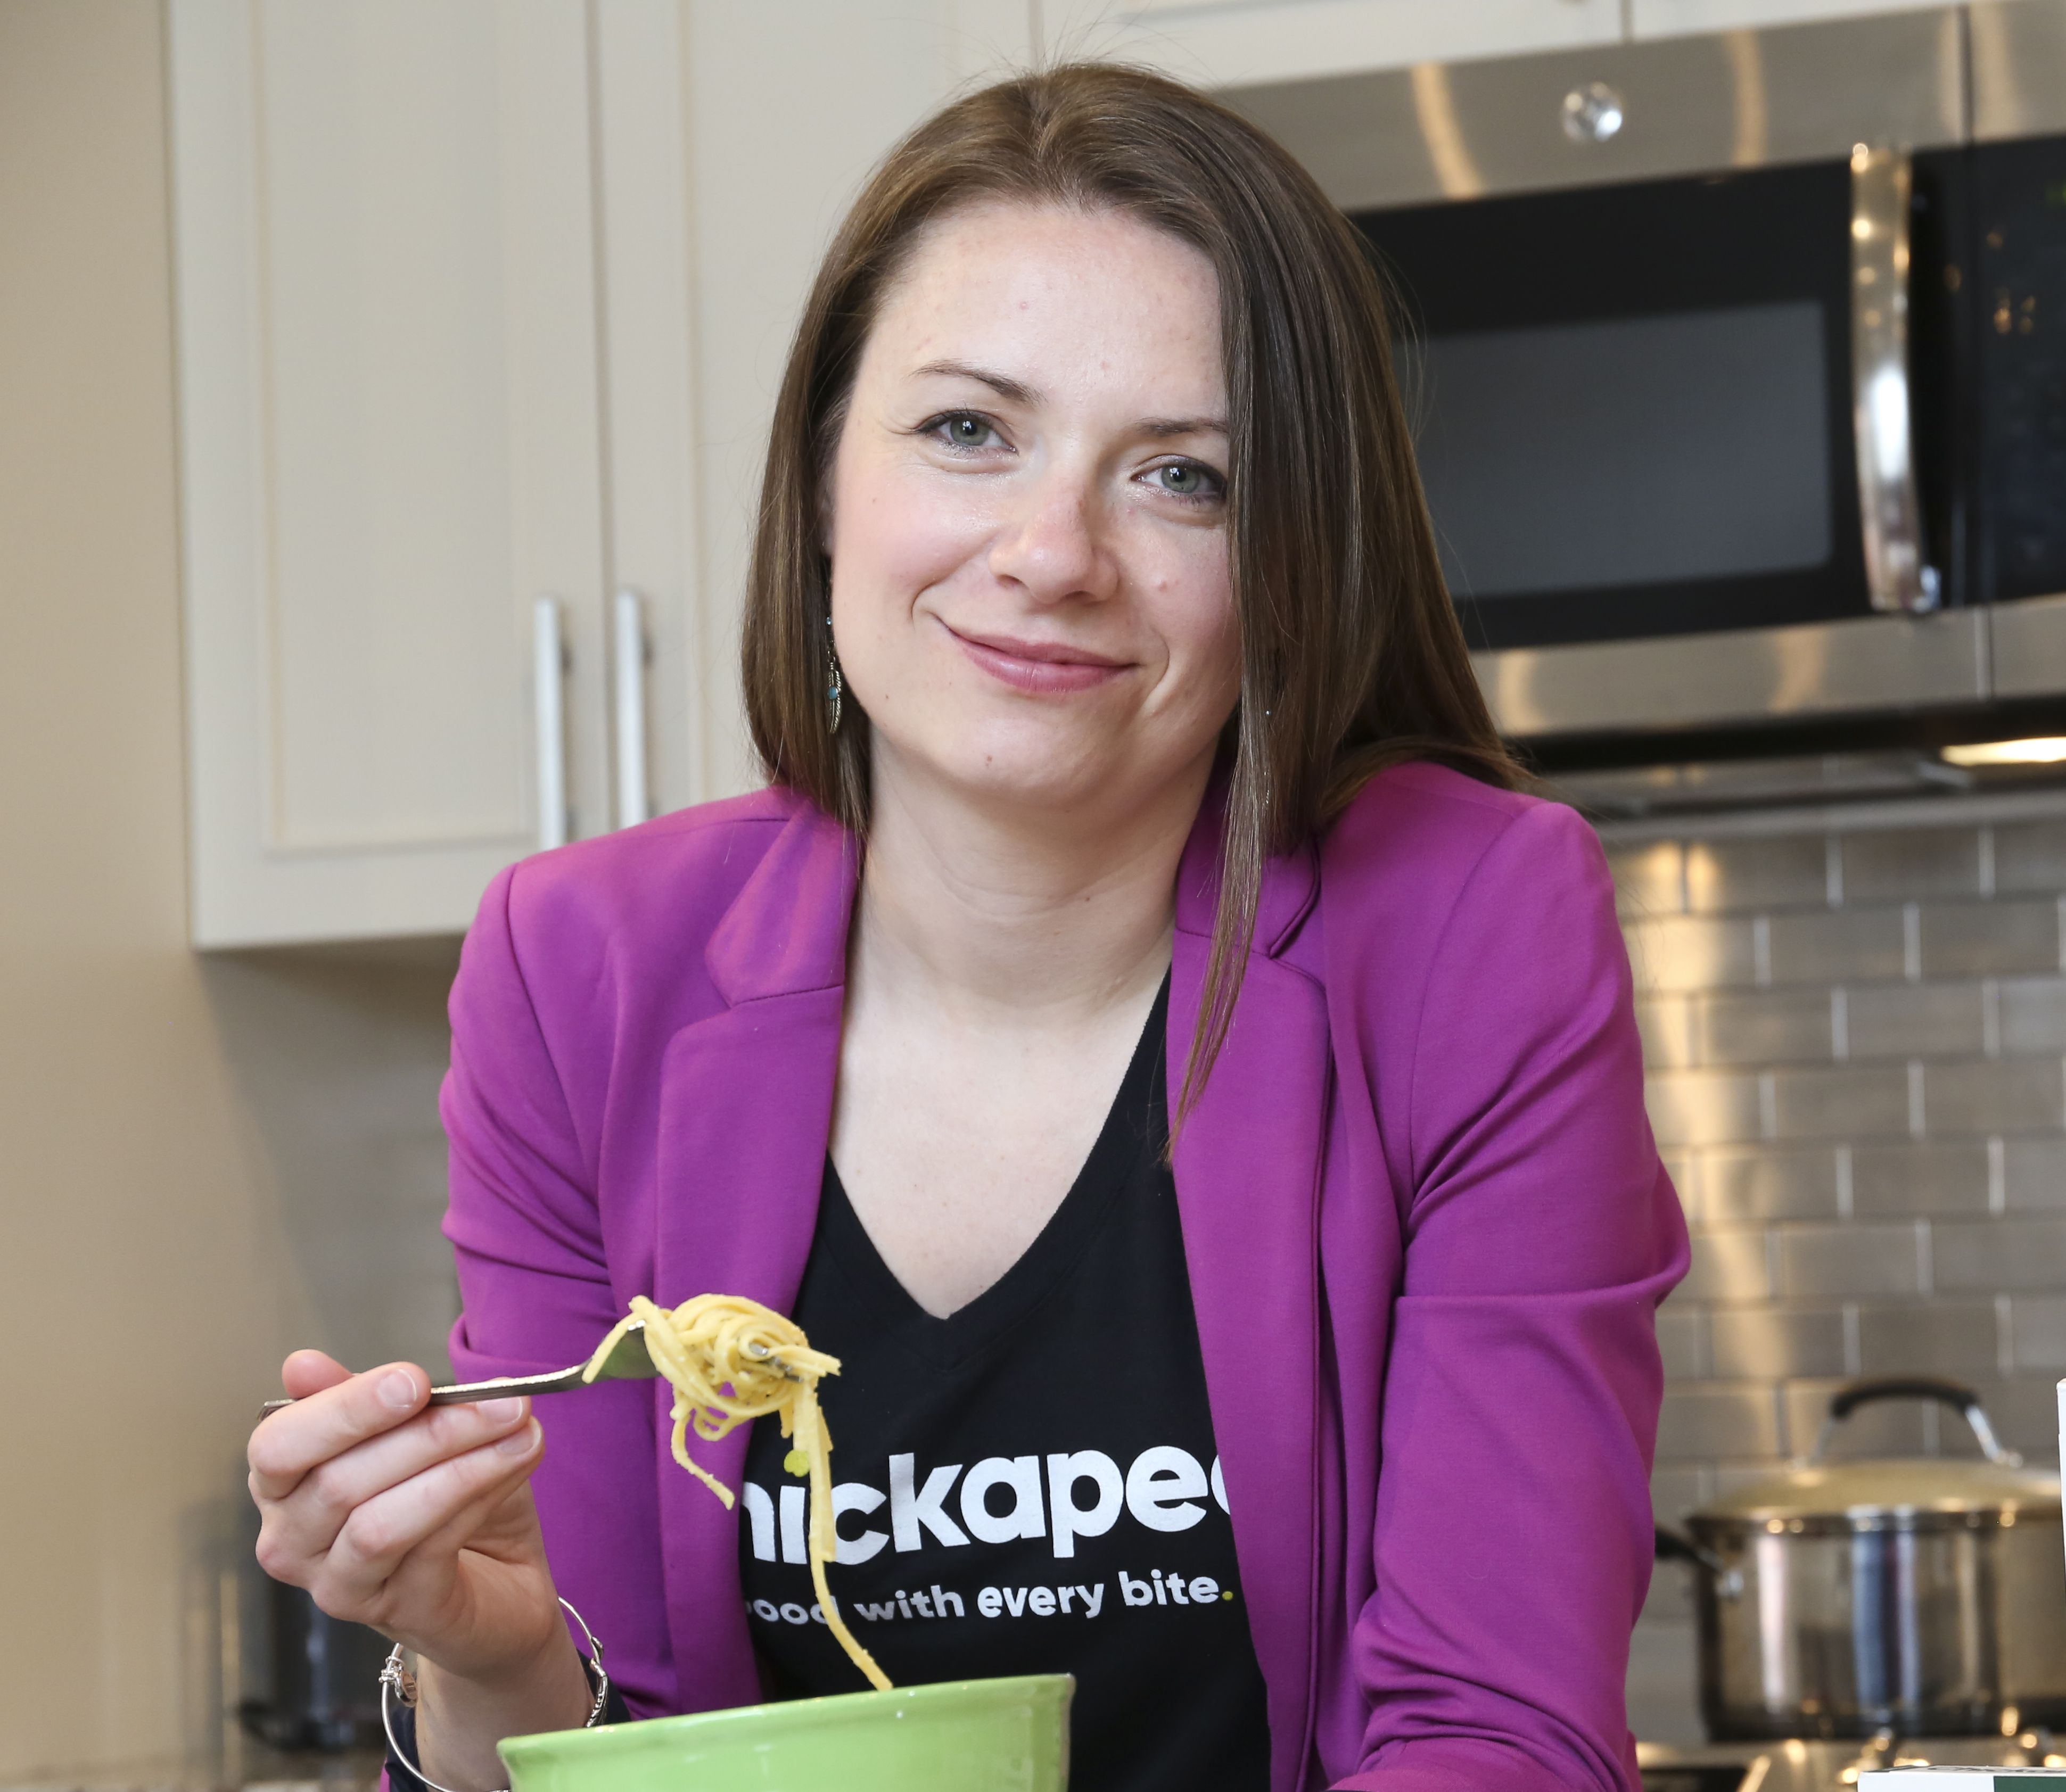 Report on Small Business Newsletter: Ontario entrepreneur's gluten-free pasta takes off with consumers